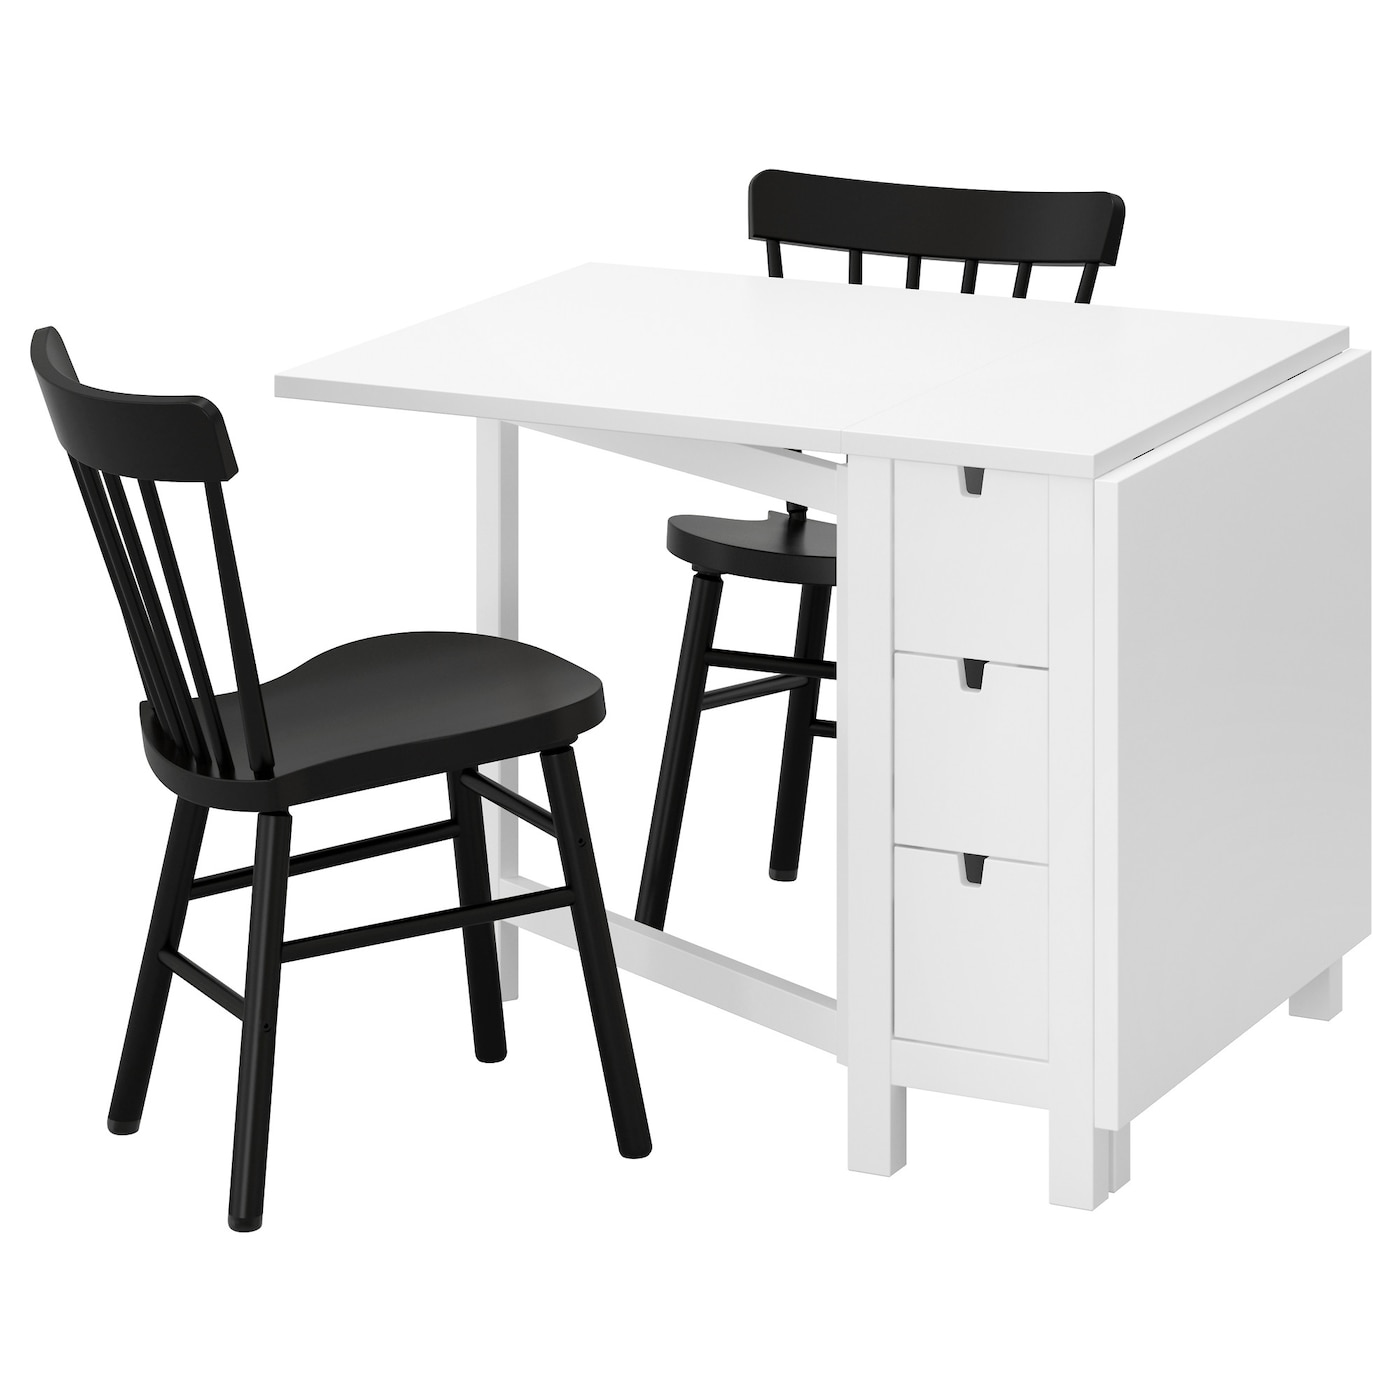 norden norraryd table et 2 chaises blanc noir 89 cm ikea. Black Bedroom Furniture Sets. Home Design Ideas